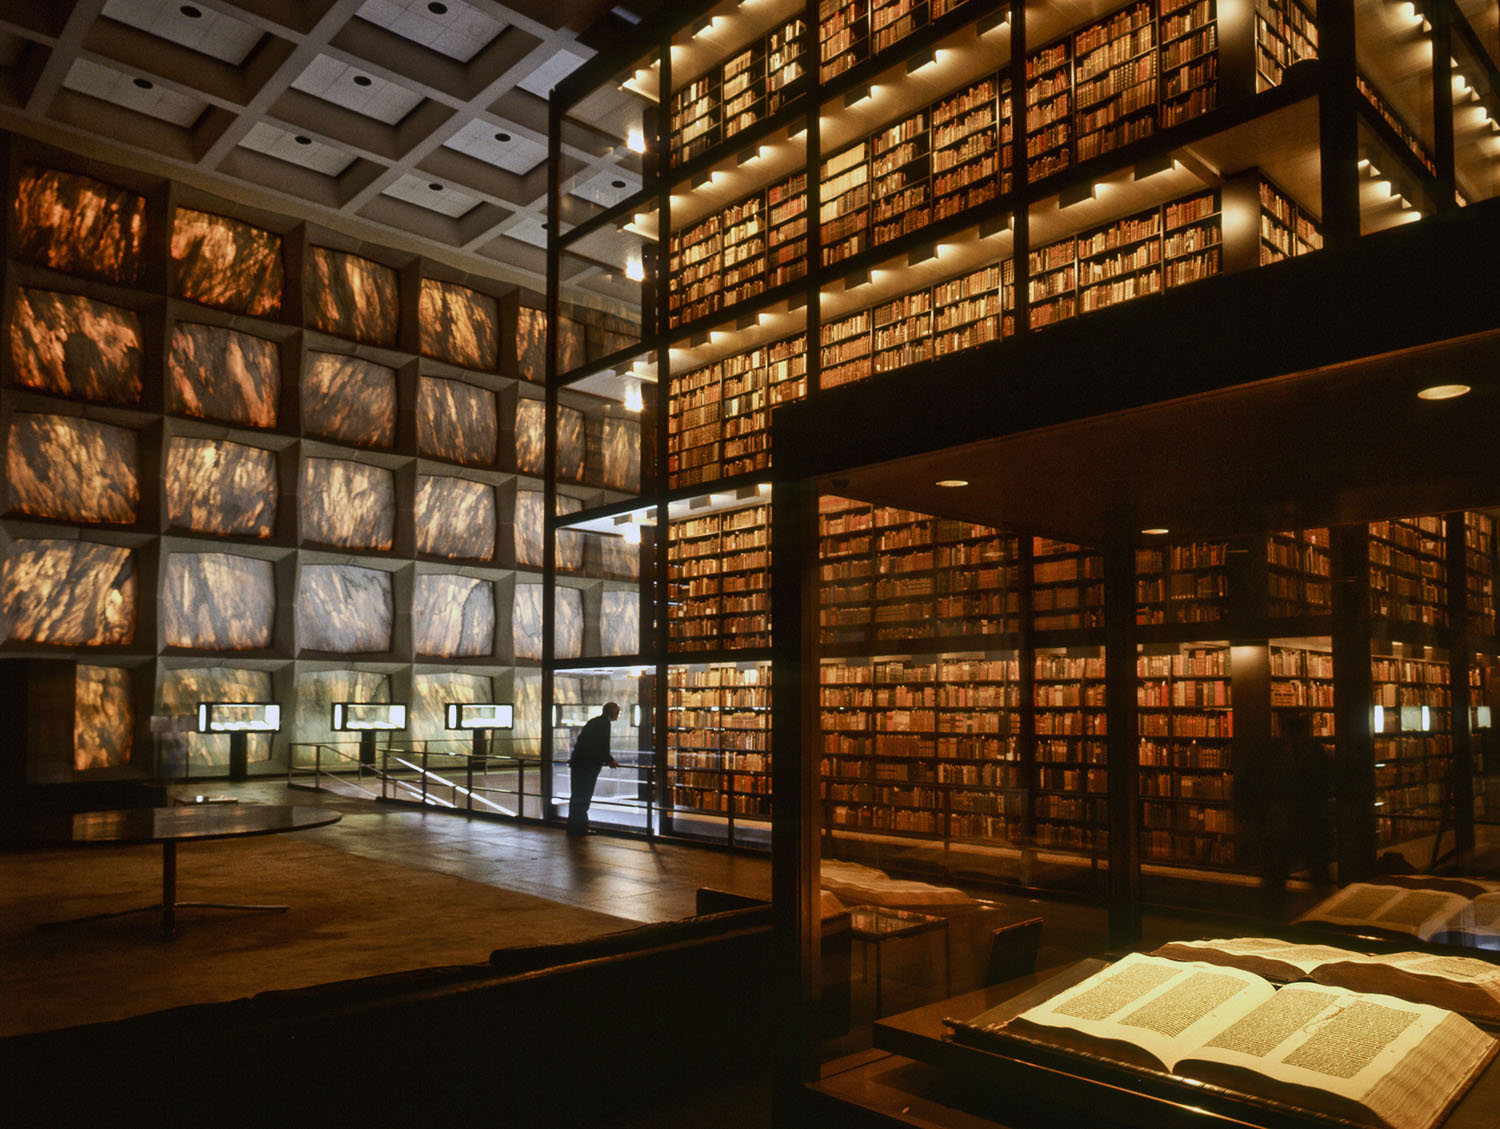 architecture photos library design Beinecke Yale Library